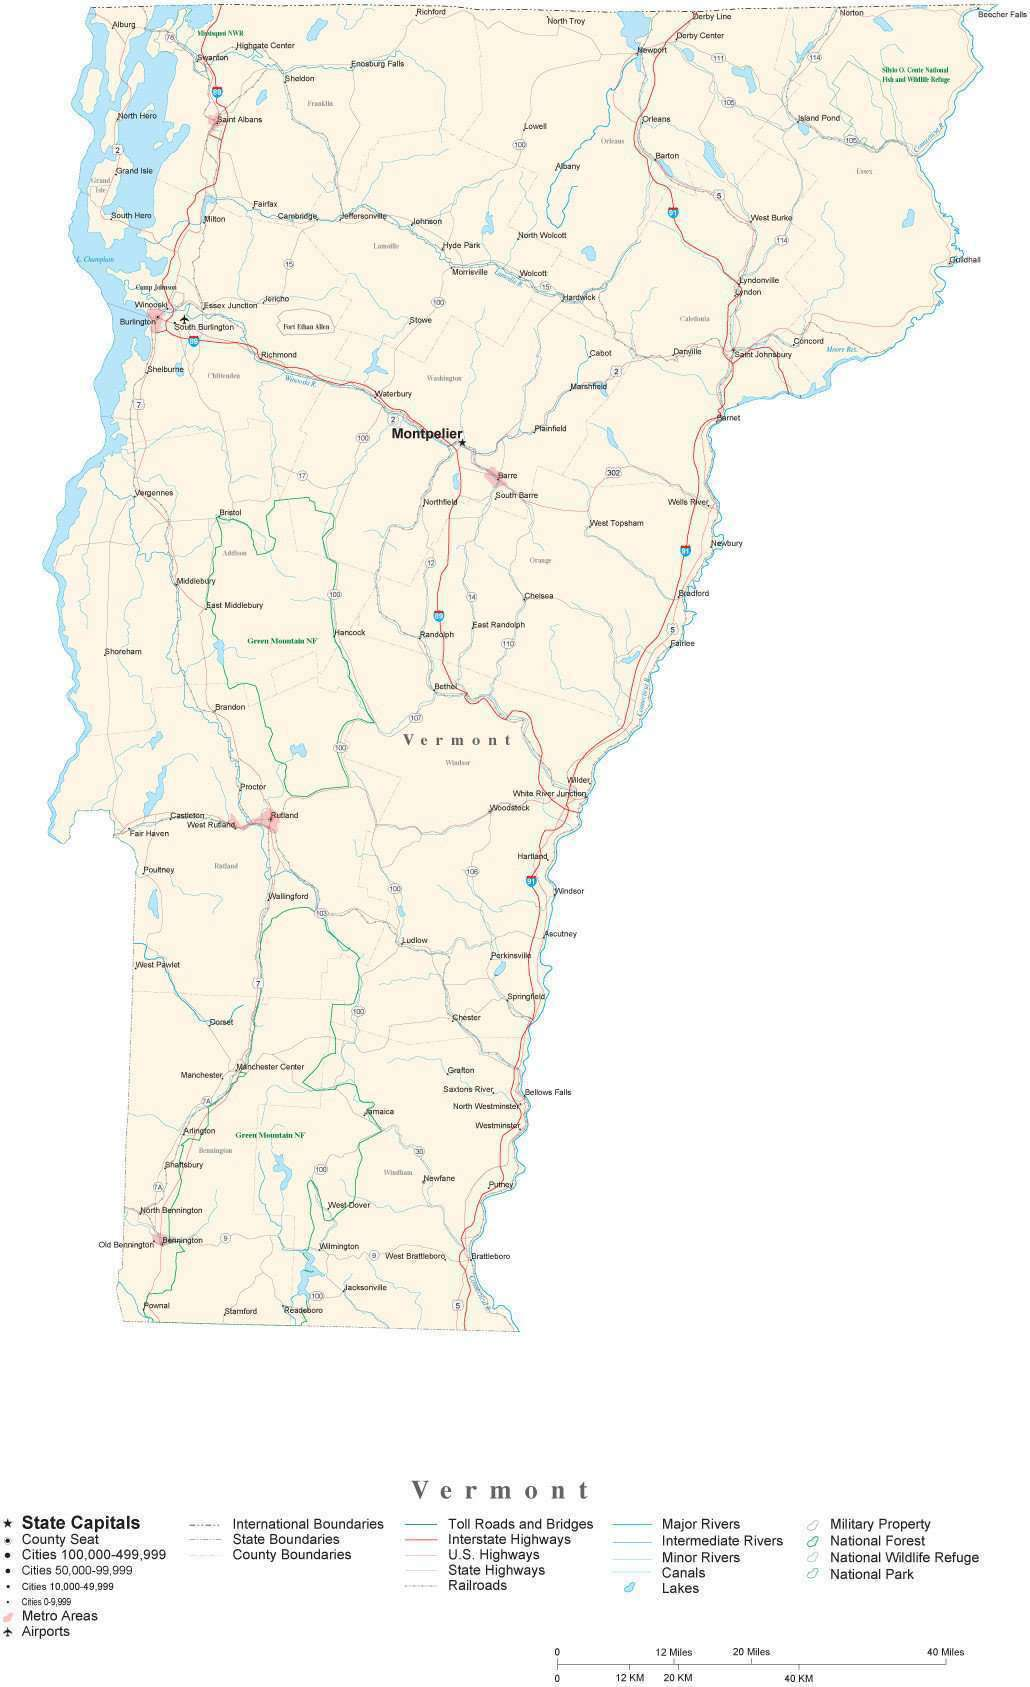 Detailed Vermont Cut-Out Style Digital Map with County Boundaries, Cities,  Highways, National Parks, and more